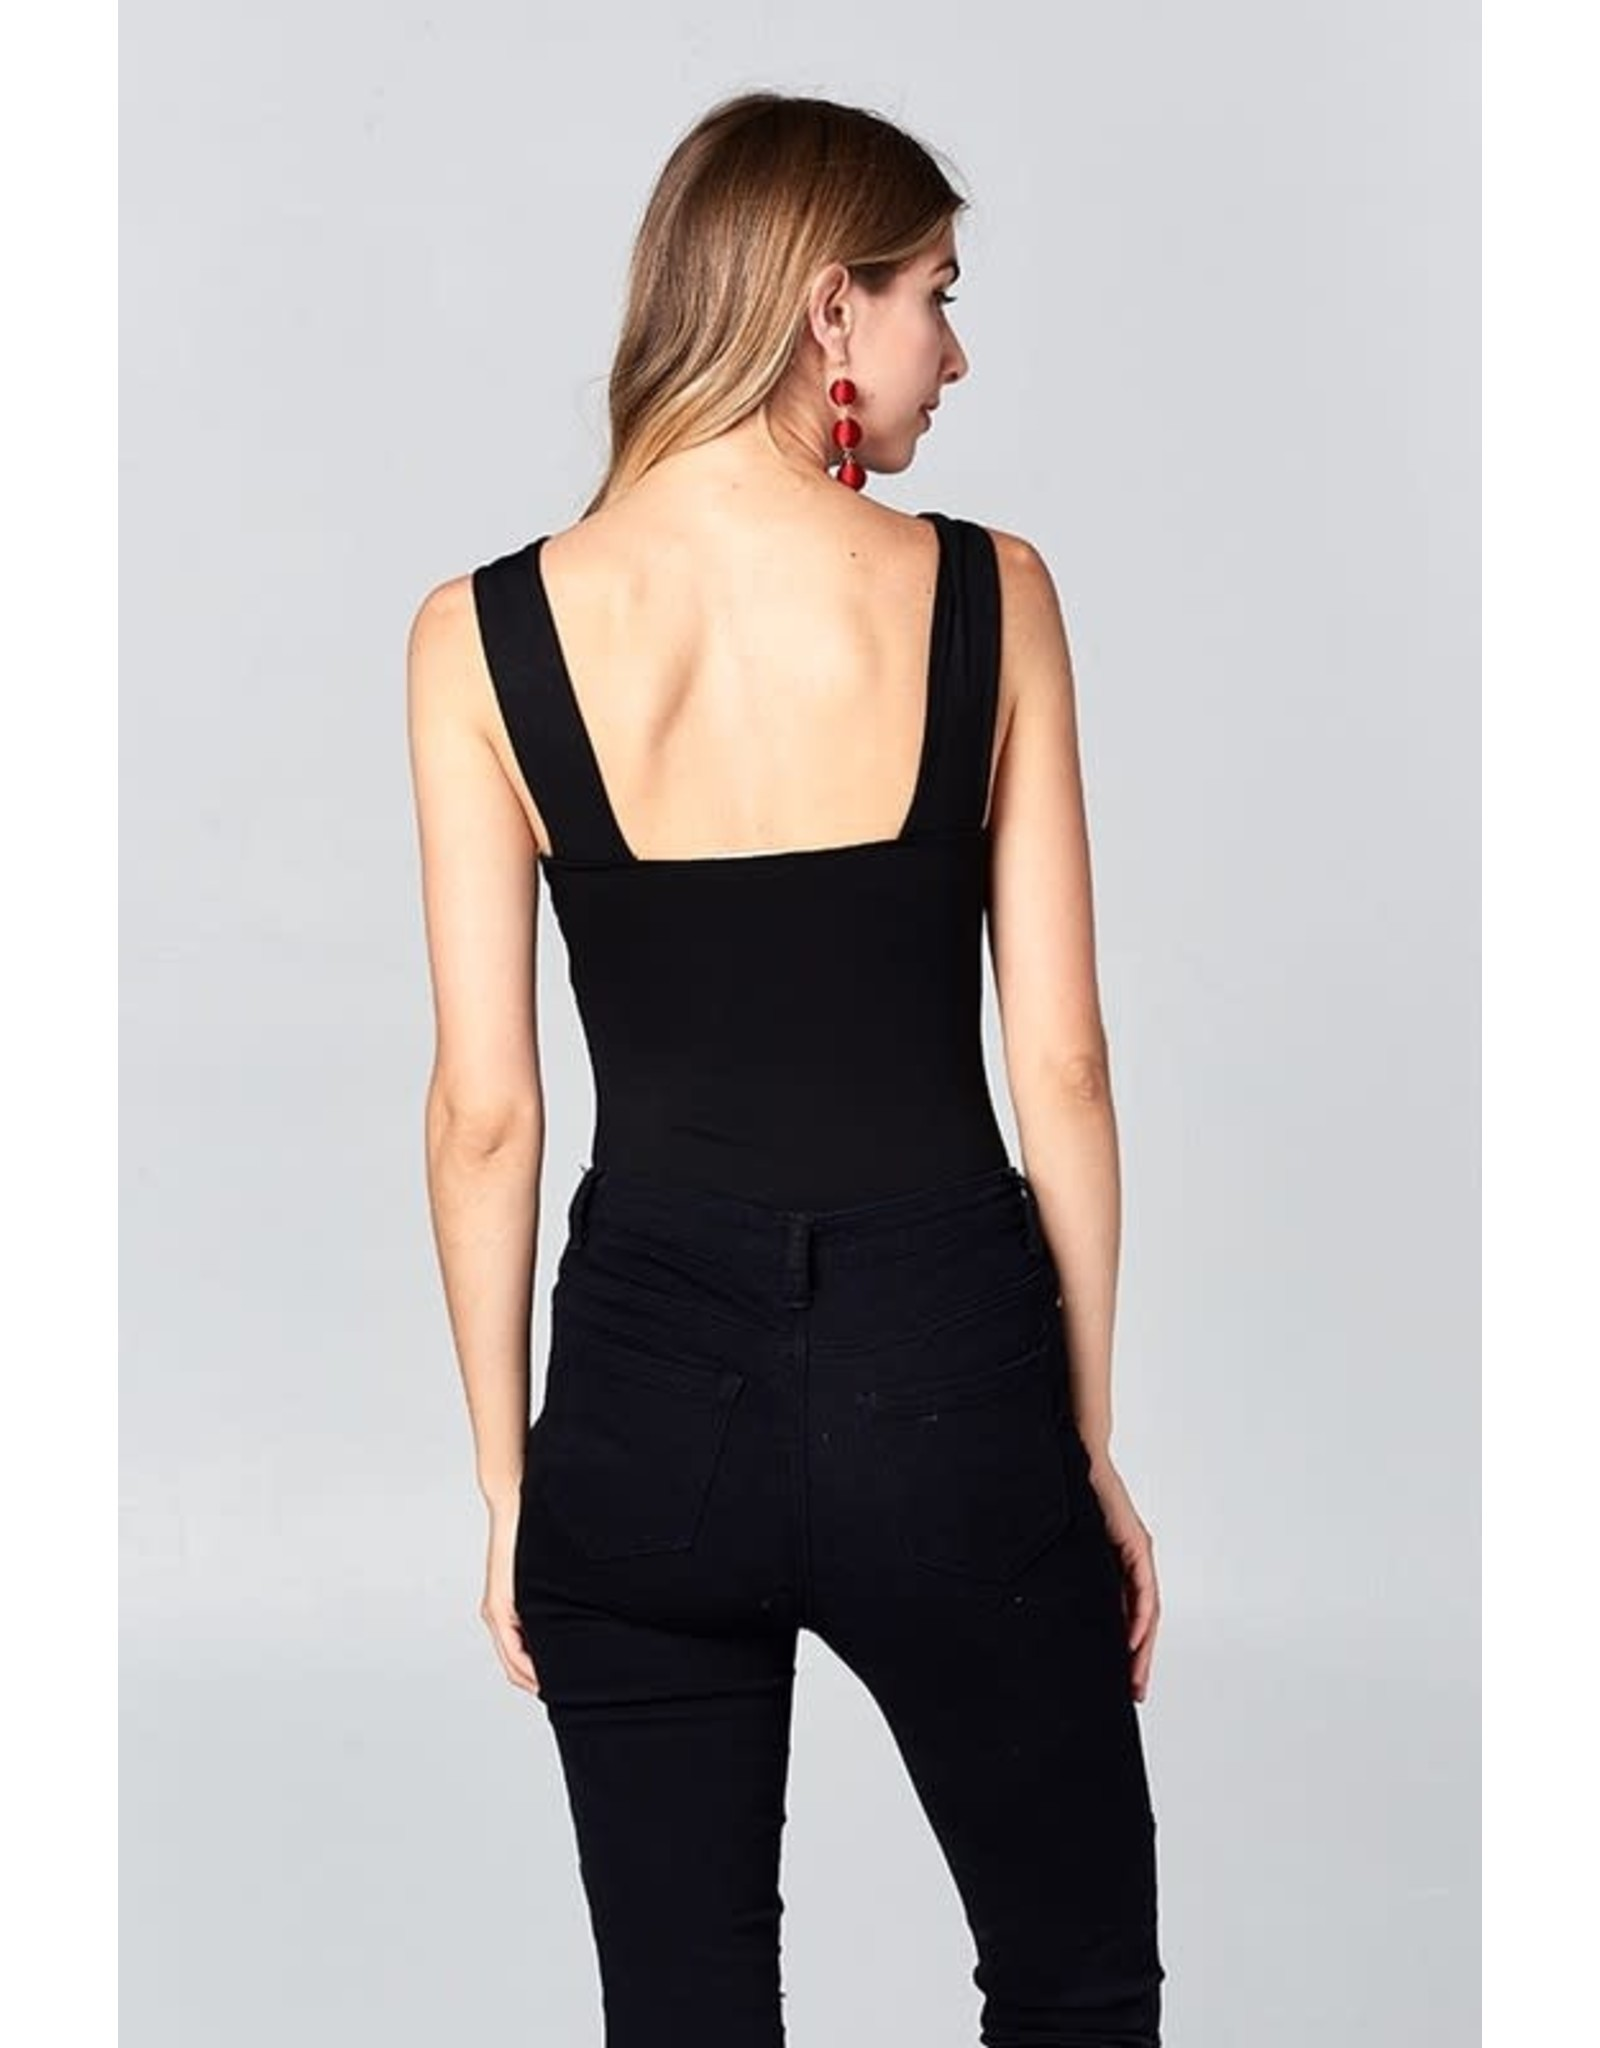 Keep You Guessing Bodysuit